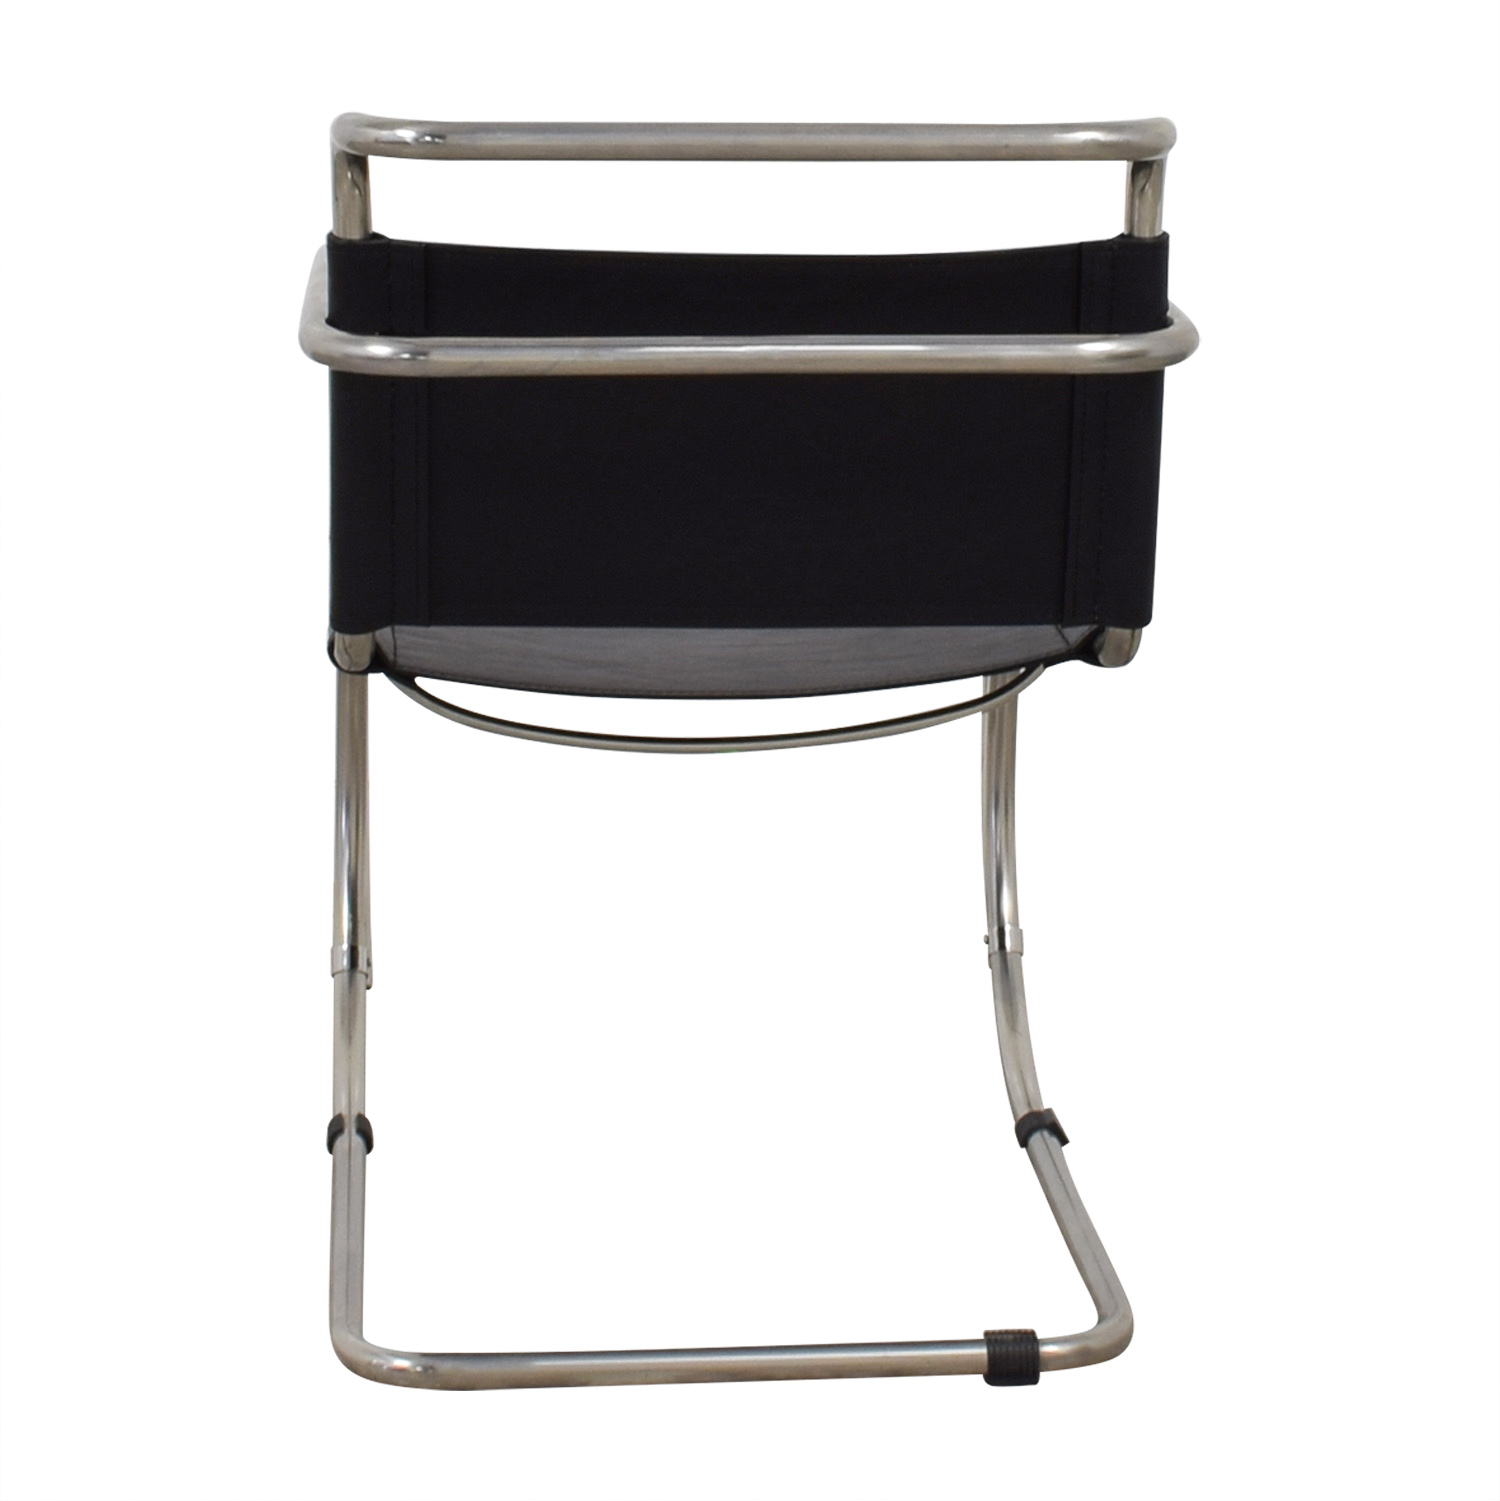 Restoration Hardware Black and Chrome Accent Chair sale